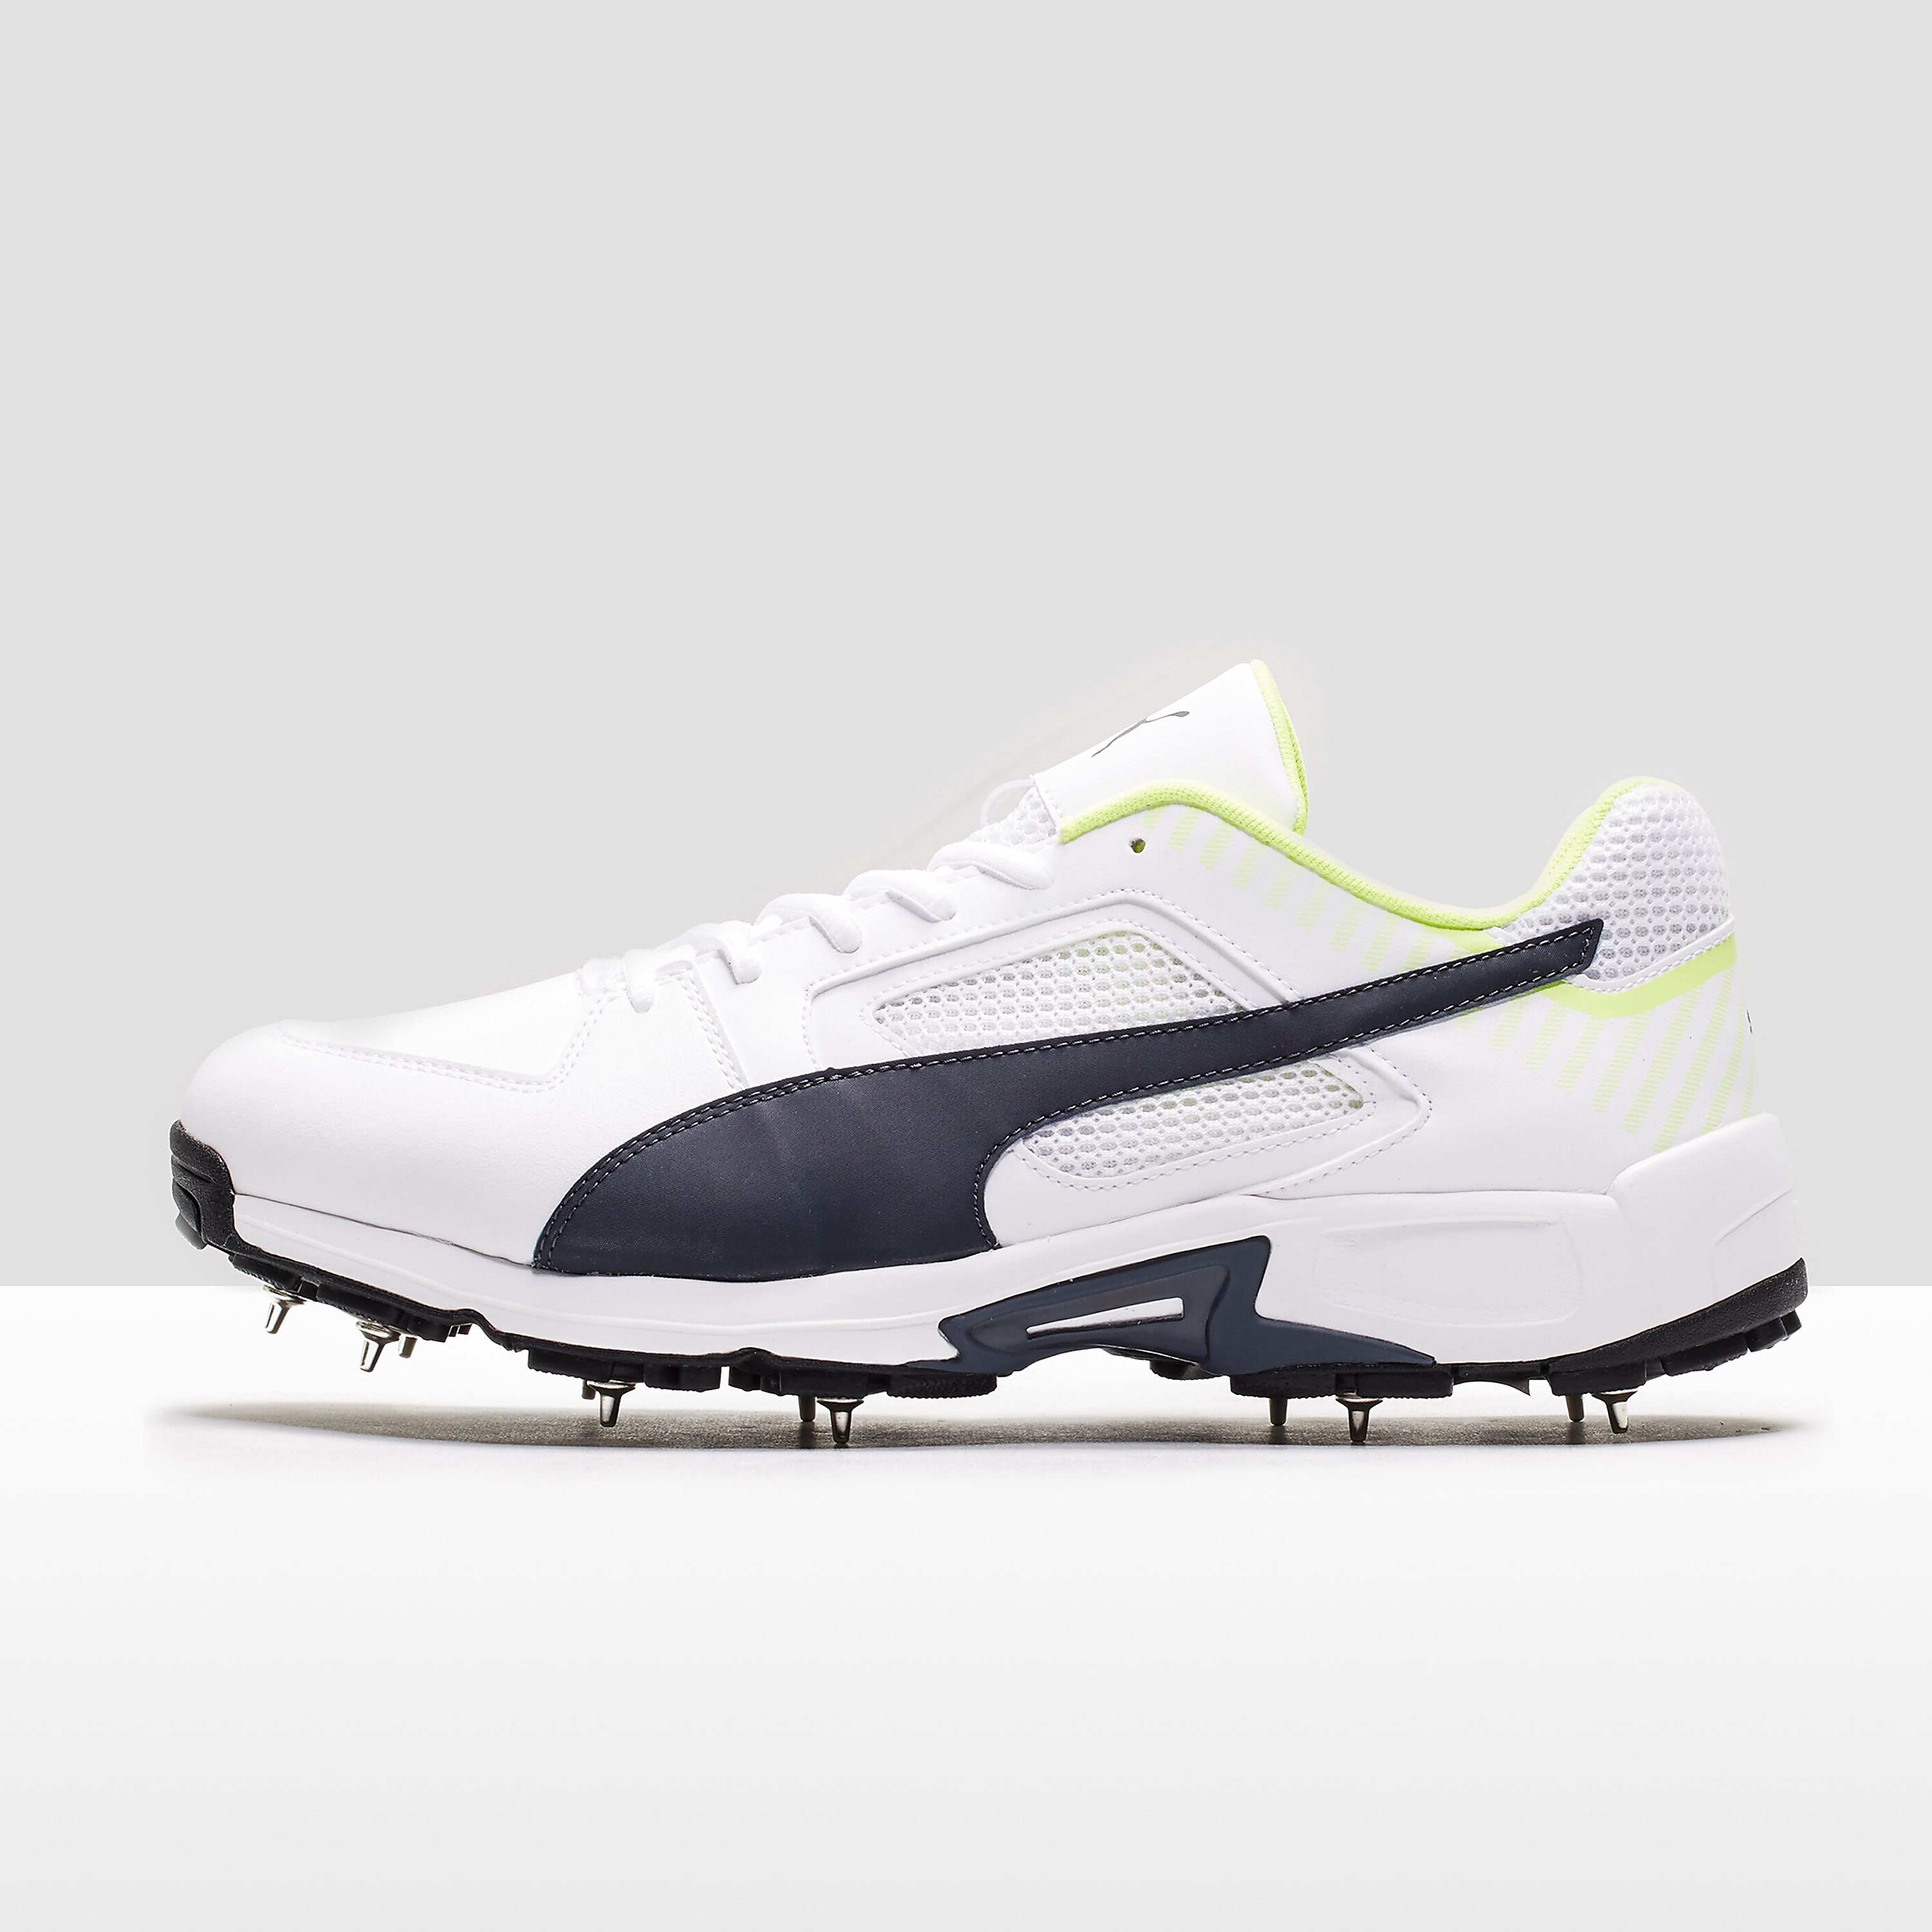 Puma evoSpeed Cricket Spike Shoes